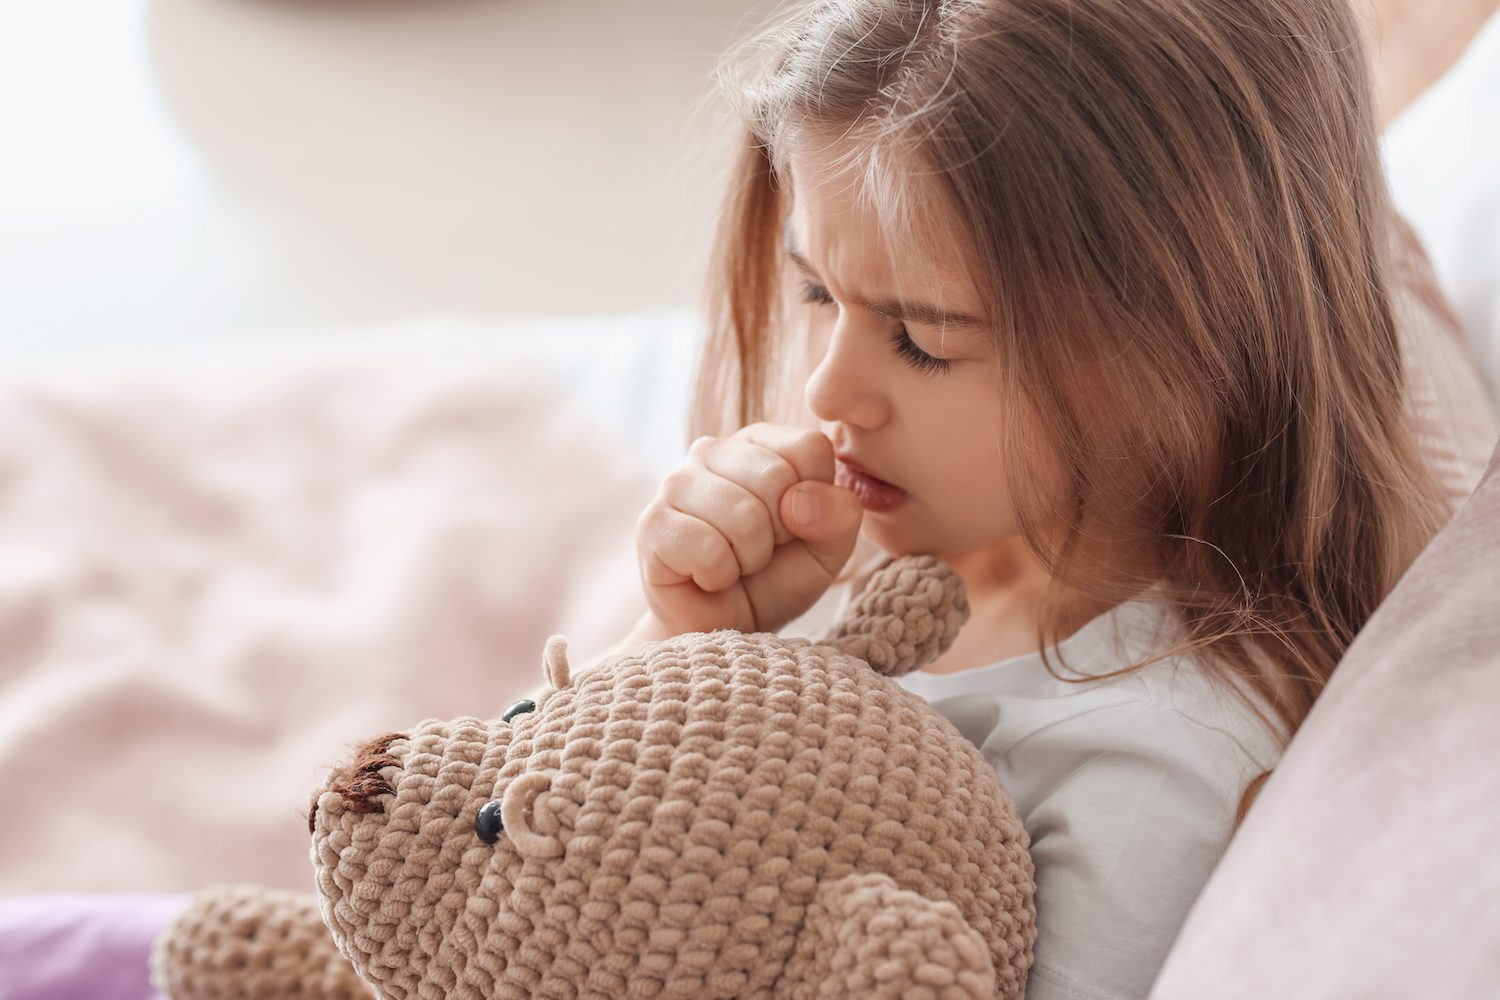 Sleep Apnea More Likely In Children with Respiratory Infections